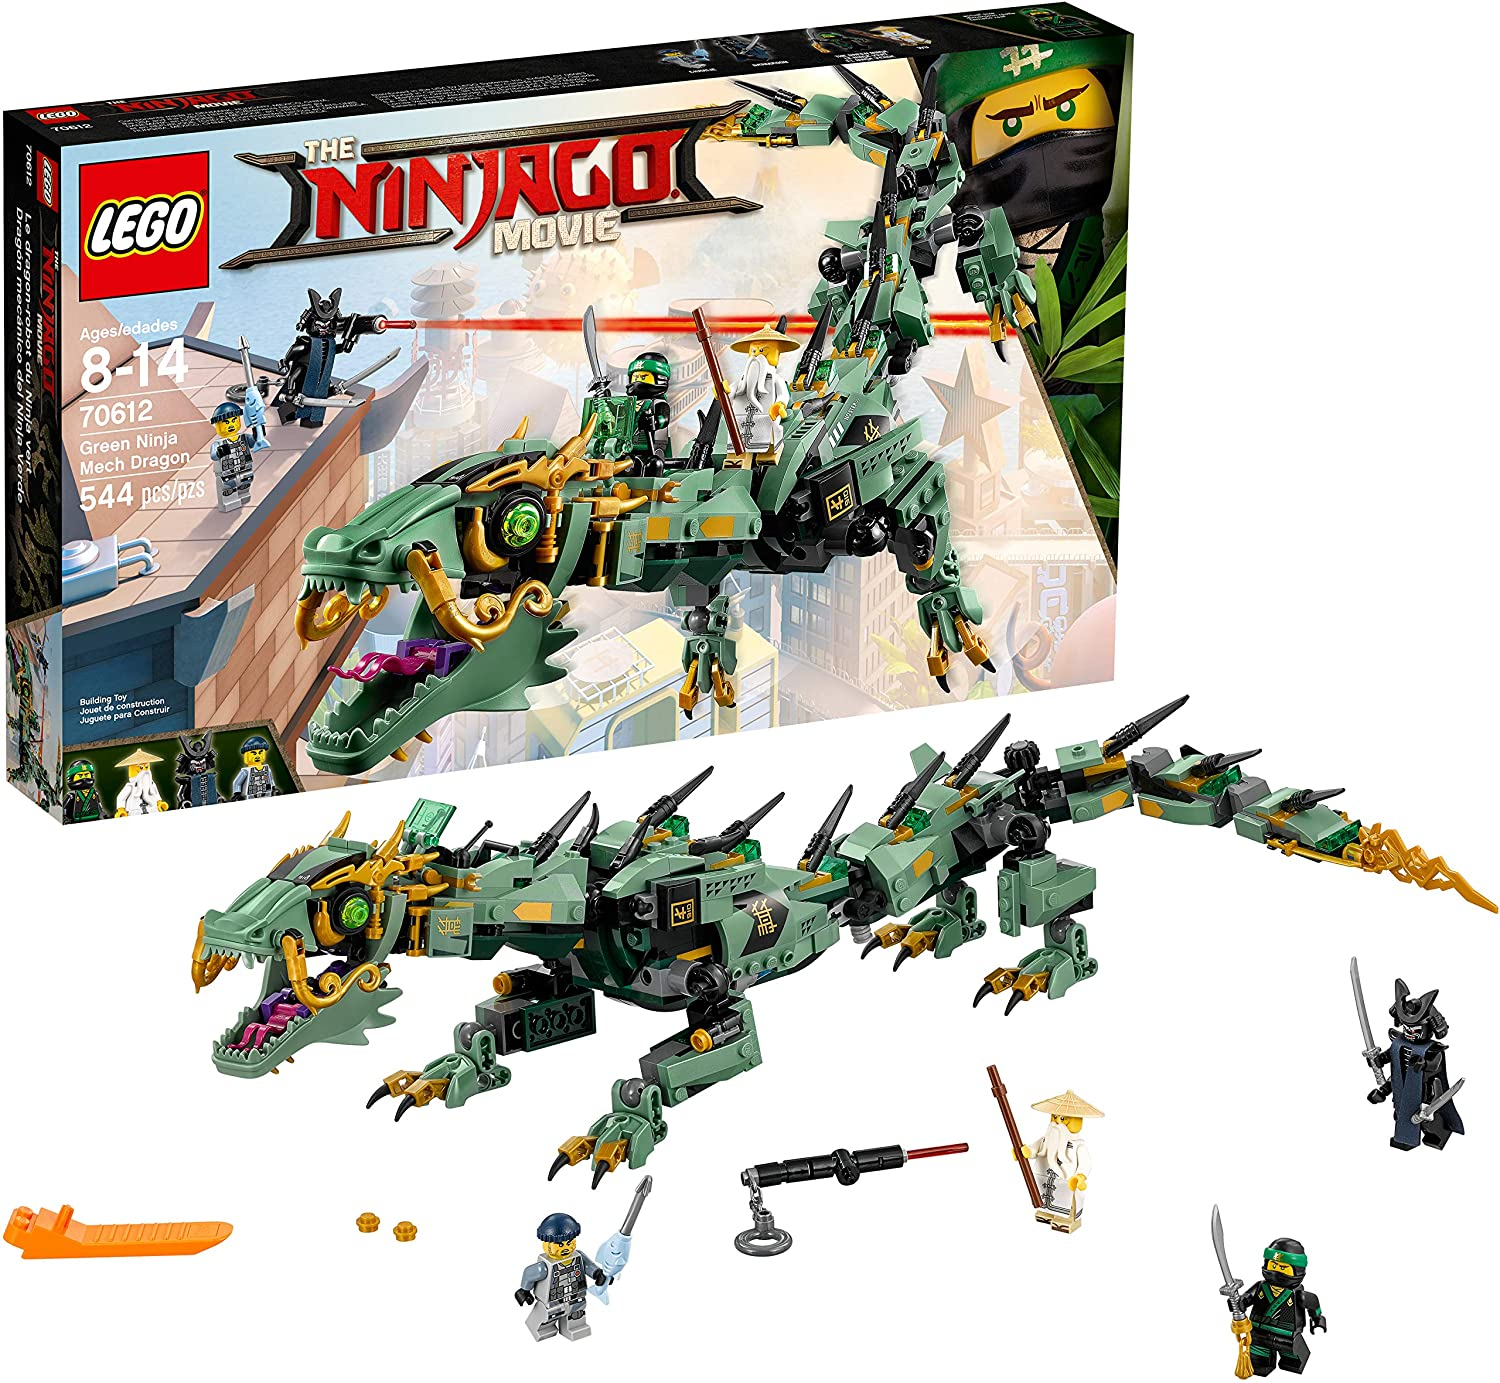 LEGO Ninjago Movie Green Ninja Mech Dragon 70612 Building ...